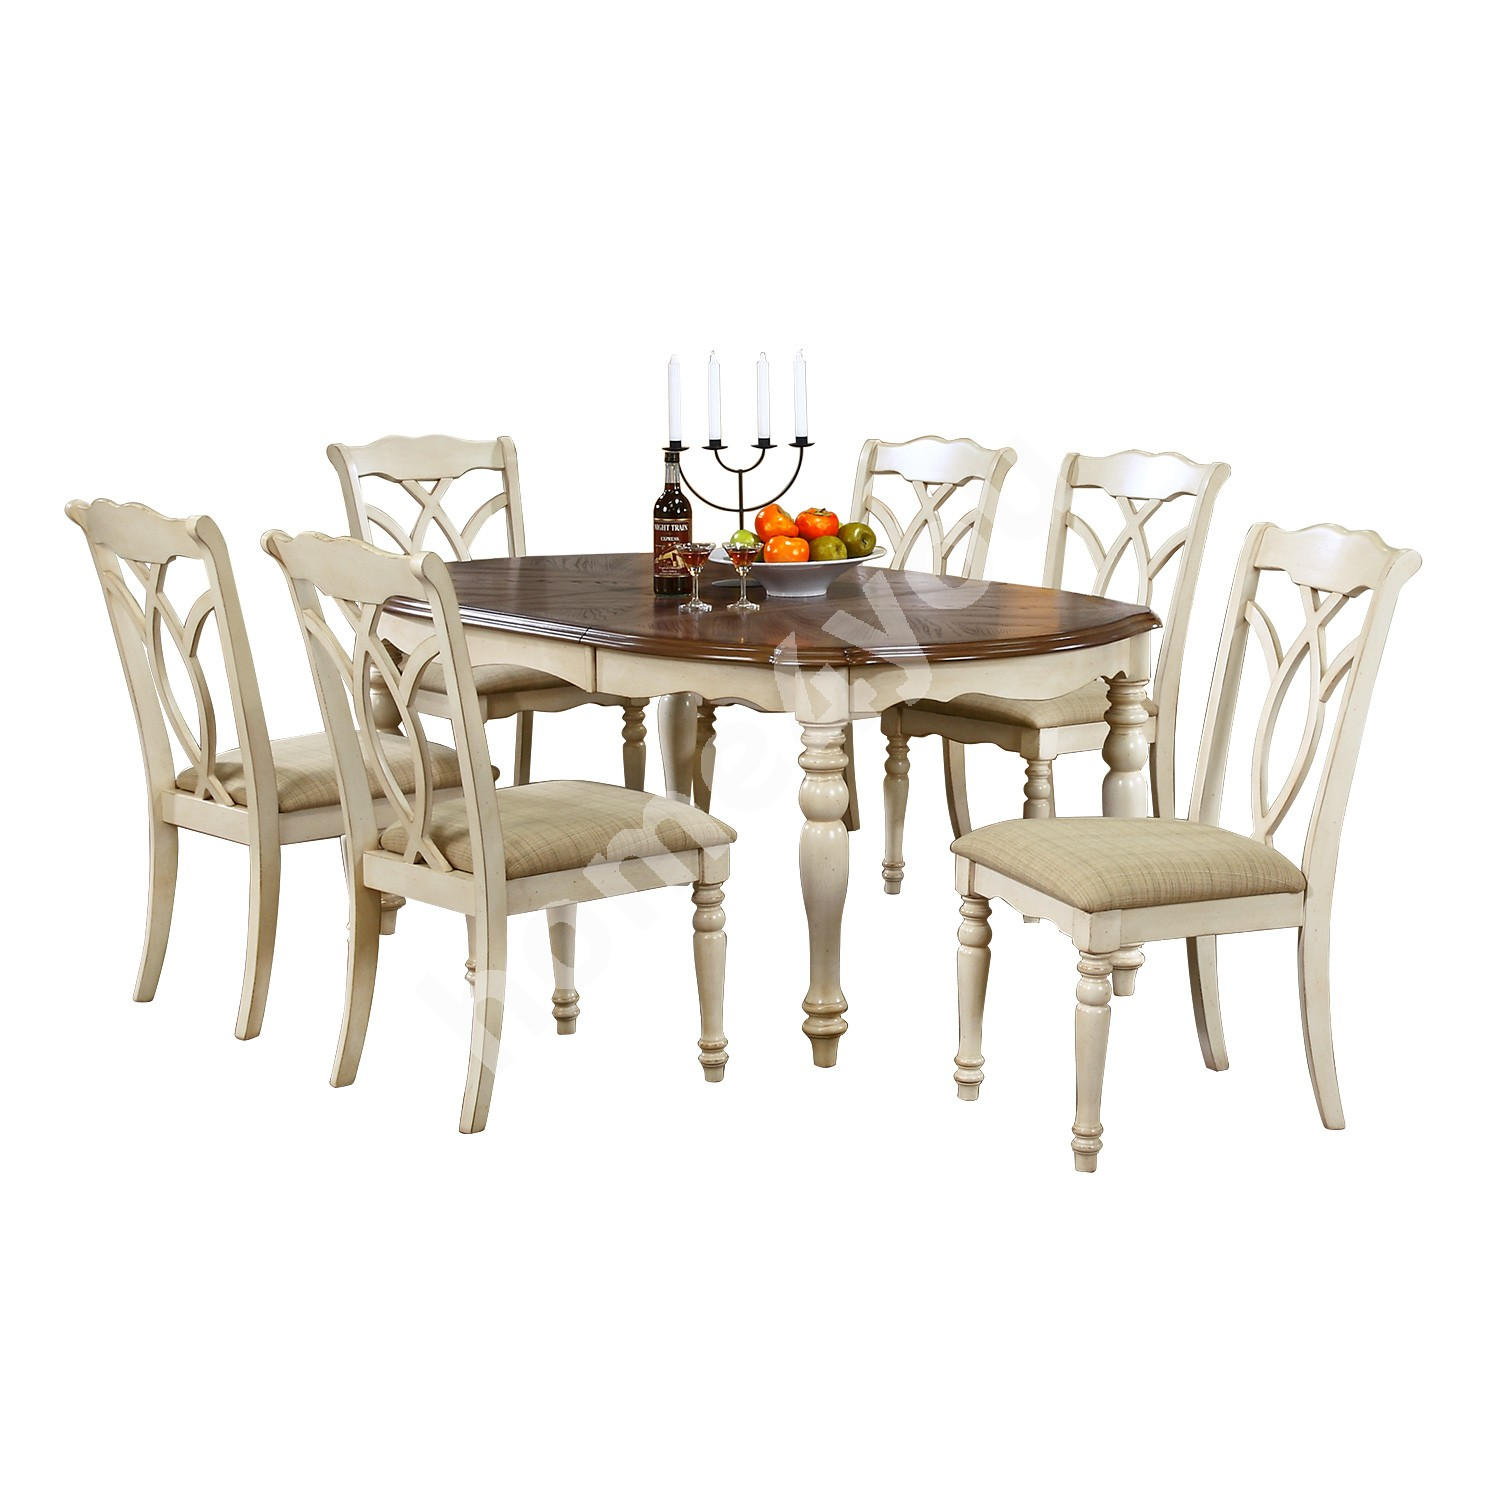 Dining set LILY with 6-chairs (14357) 106,5x137+45xH76cm, material: oak veneer on MDF / rubber wood, color: oak / antiqu